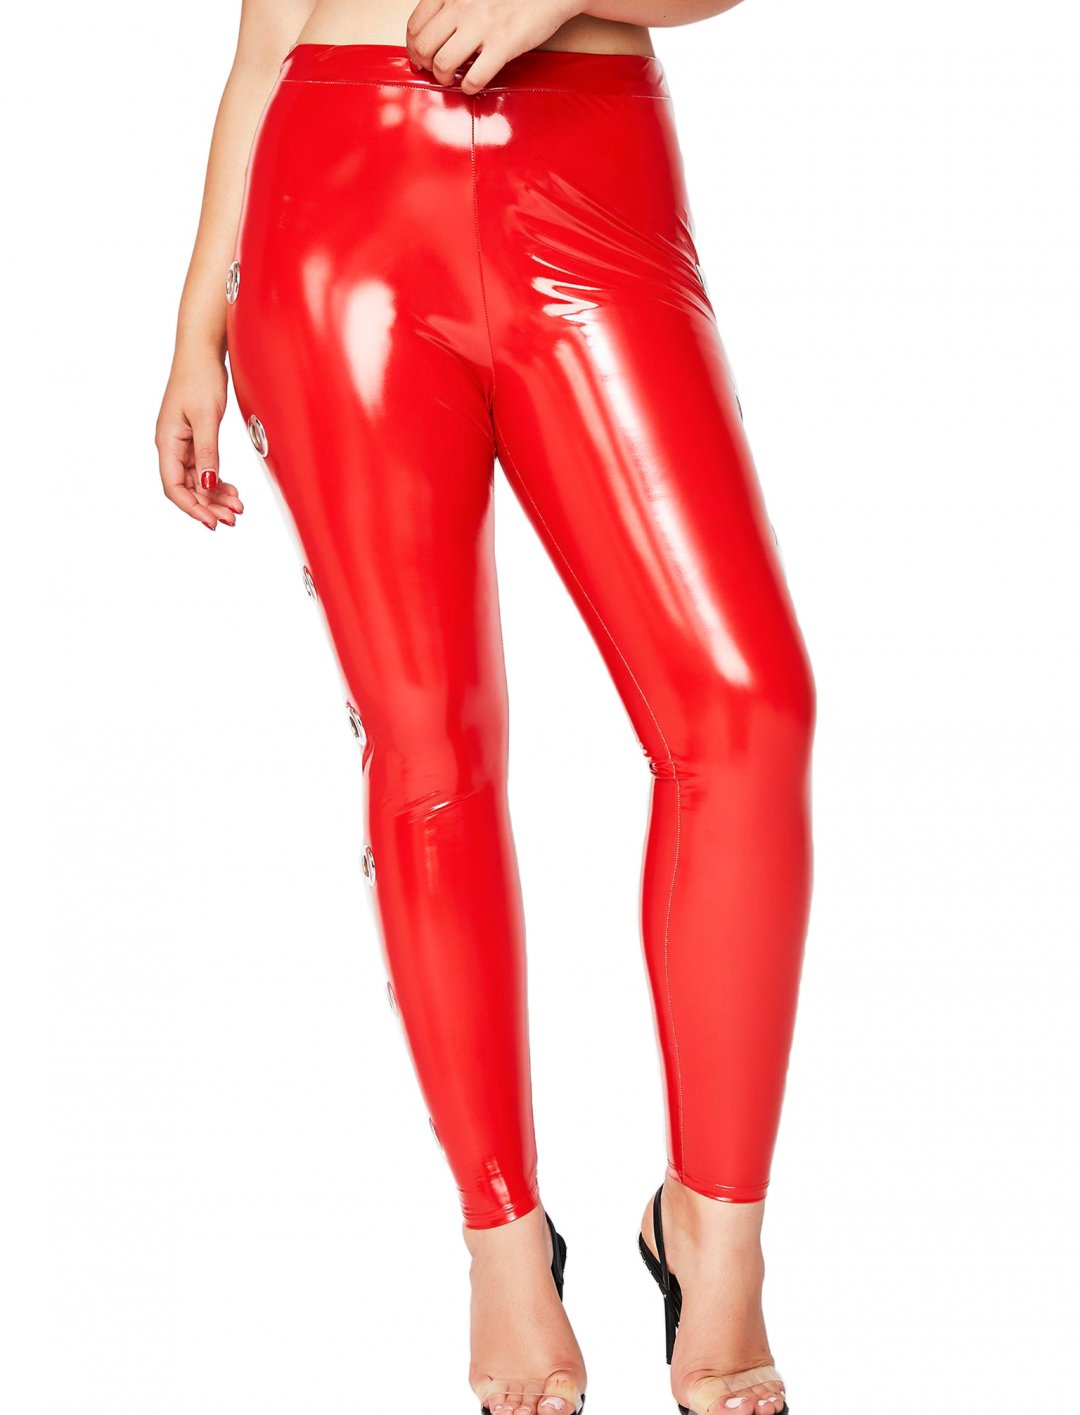 "Dinah Jane's Vinyl Pants {""id"":5,""product_section_id"":1,""name"":""Clothing"",""order"":5}"